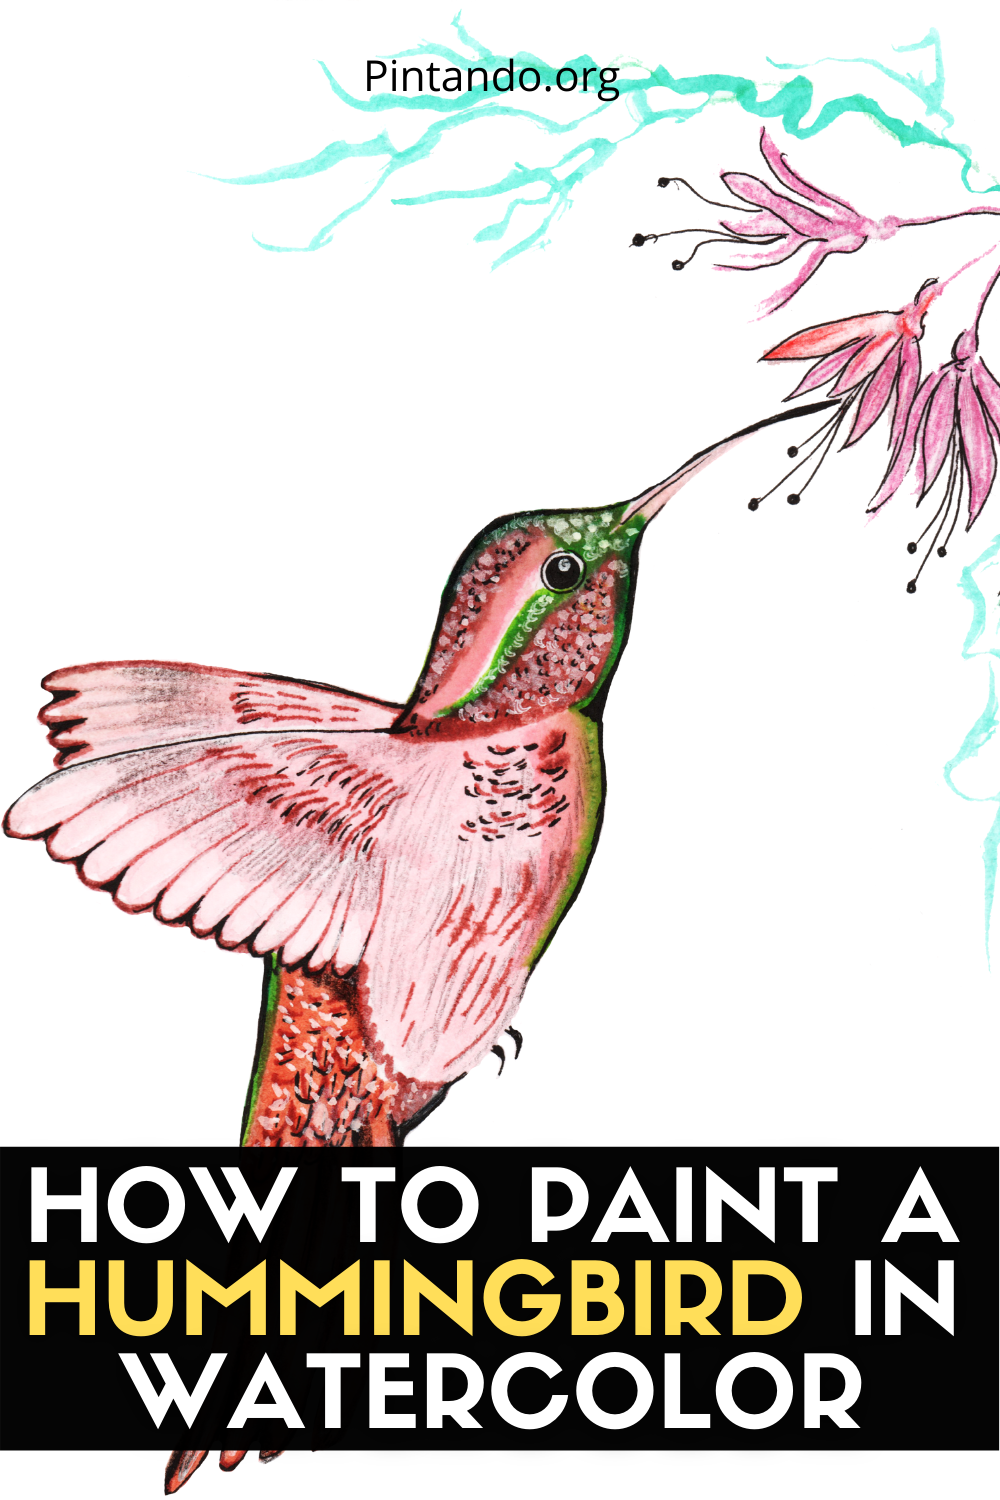 HOW TO PAINT A HUMMINGBIRD IN WATERCOLOR